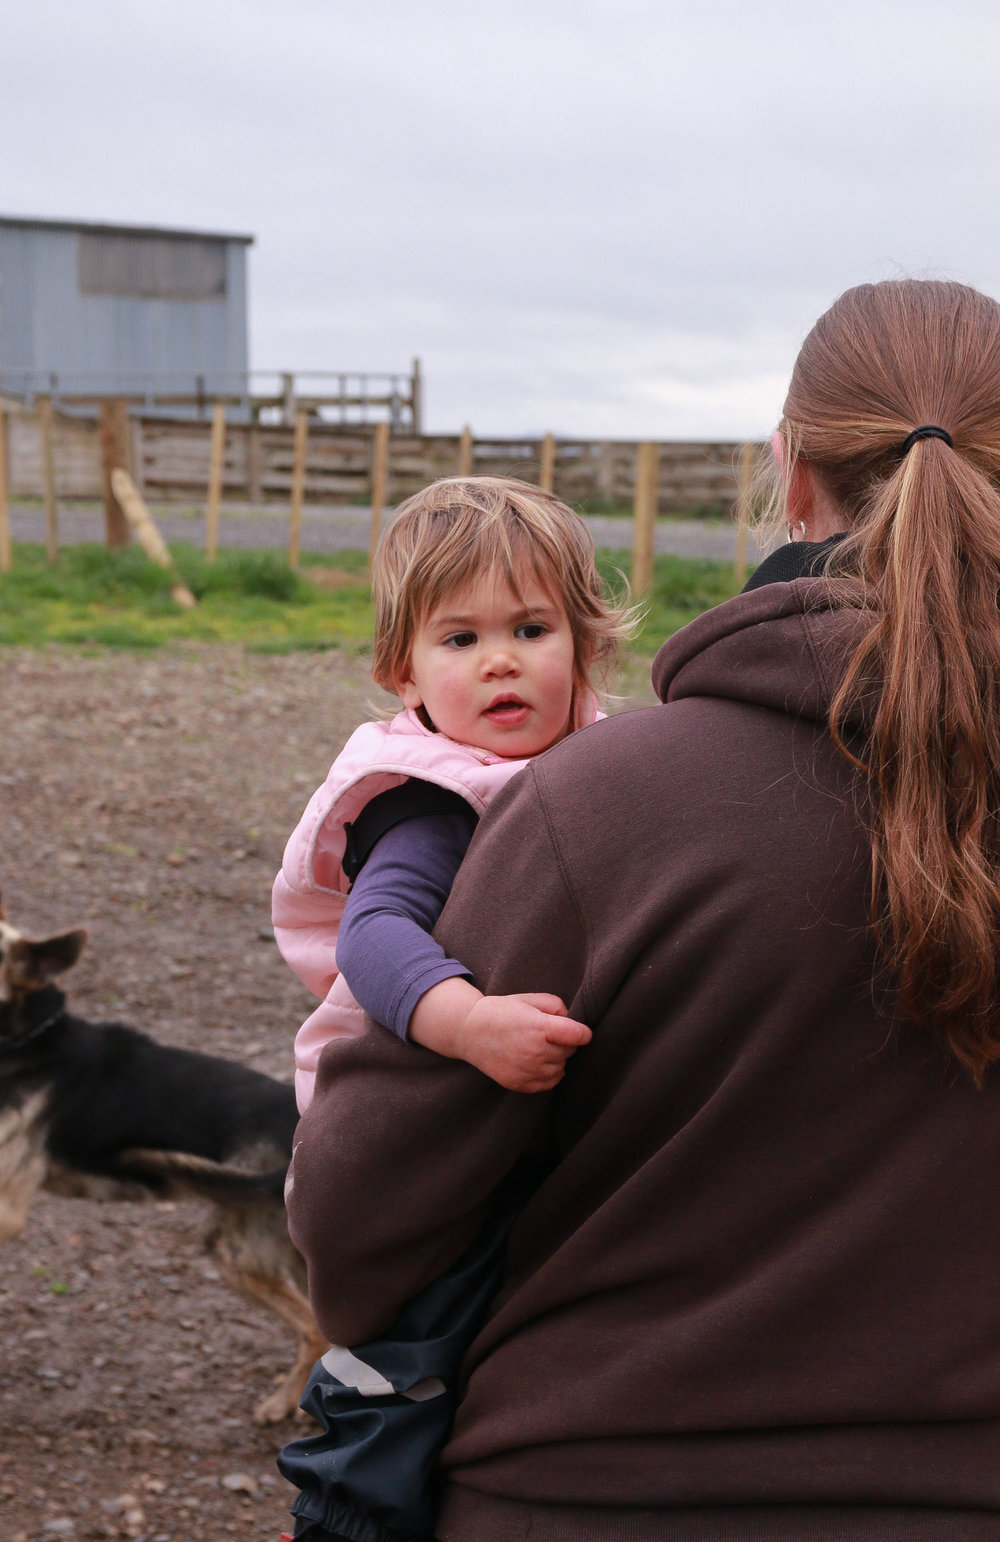 little-girl-on-farm-being-held-by-mum-dogs-in-background